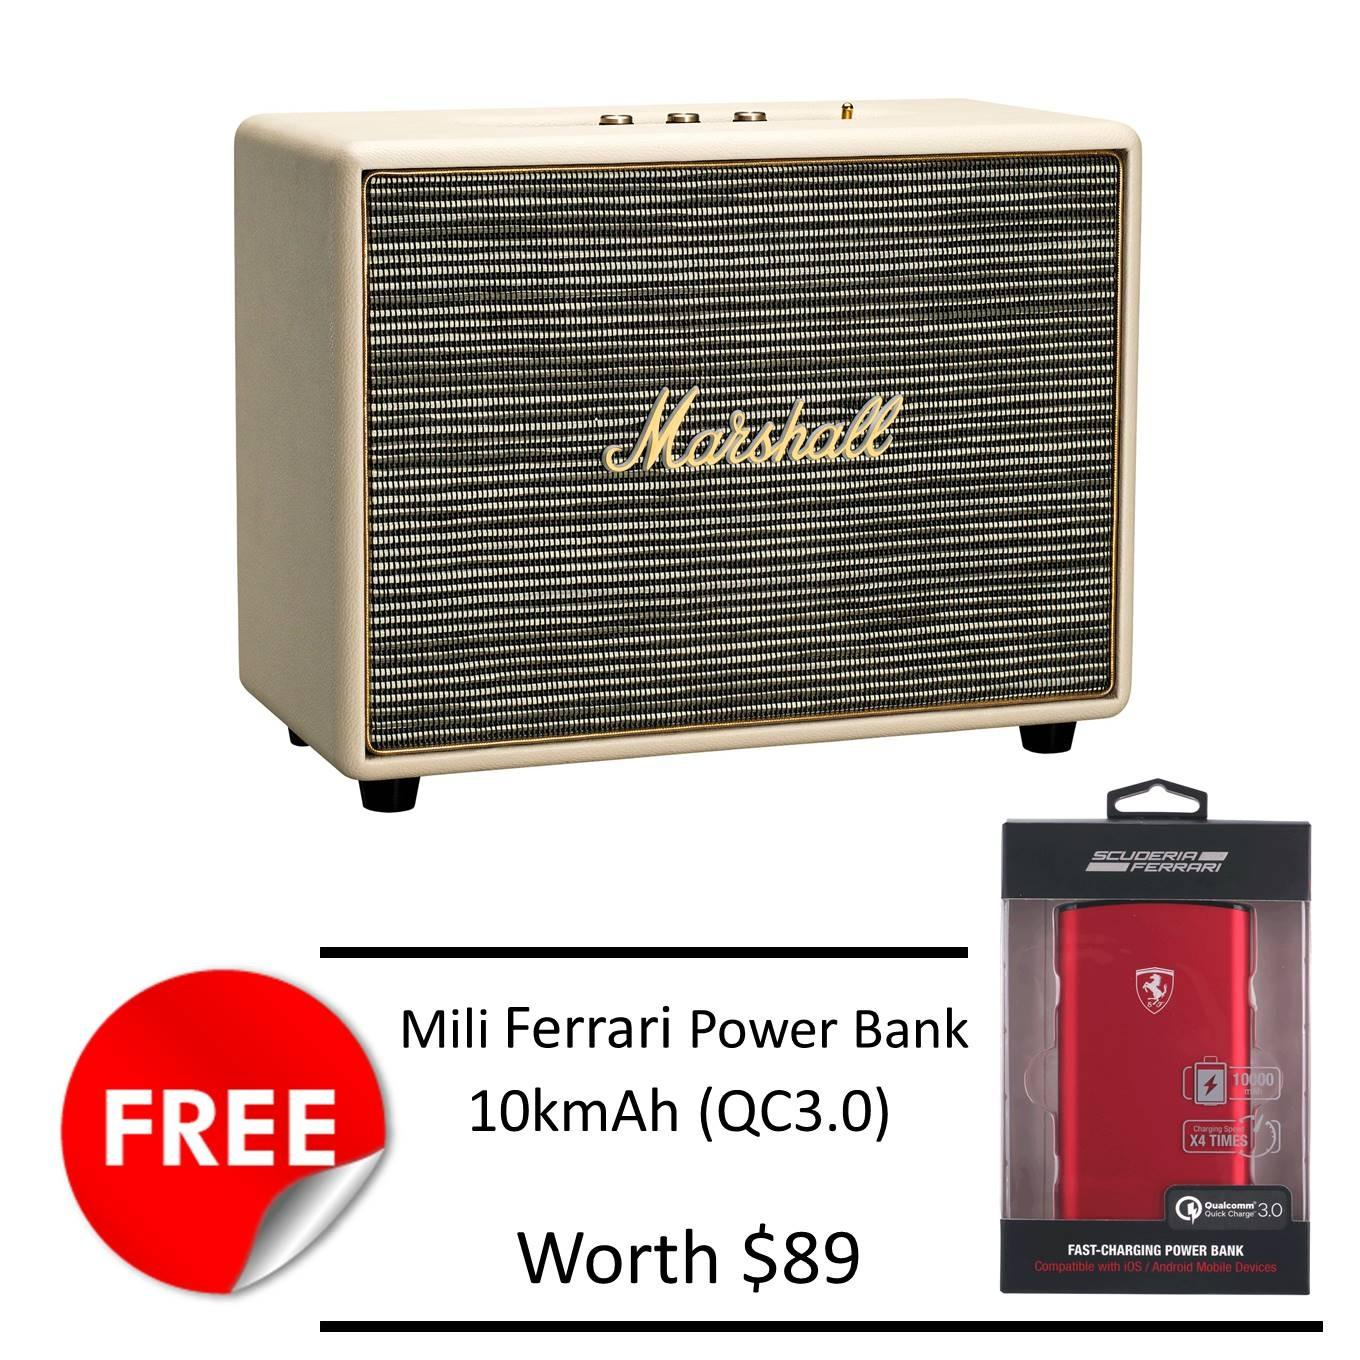 Price Marshall Woburn Speaker Cream Free Mili Ferrari 10Kmah Powerbank Marshall New